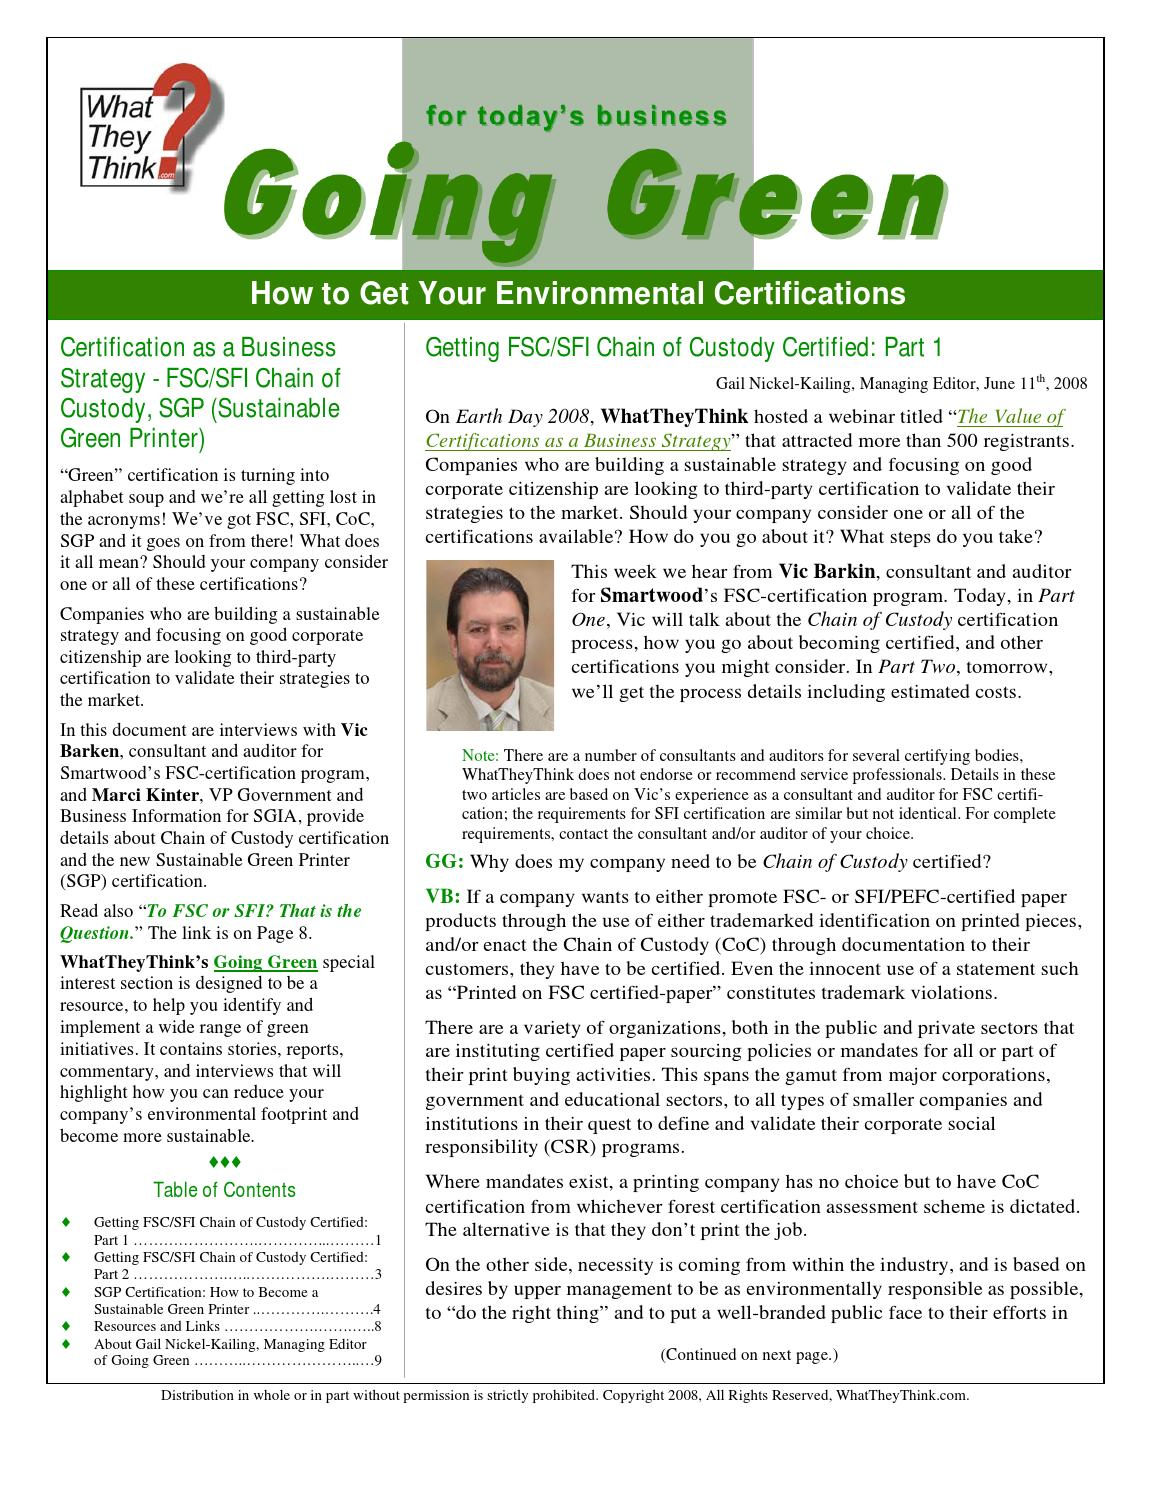 How to get your environmental certification by gail nickel kailing how to get your environmental certification by gail nickel kailing issuu 1betcityfo Choice Image